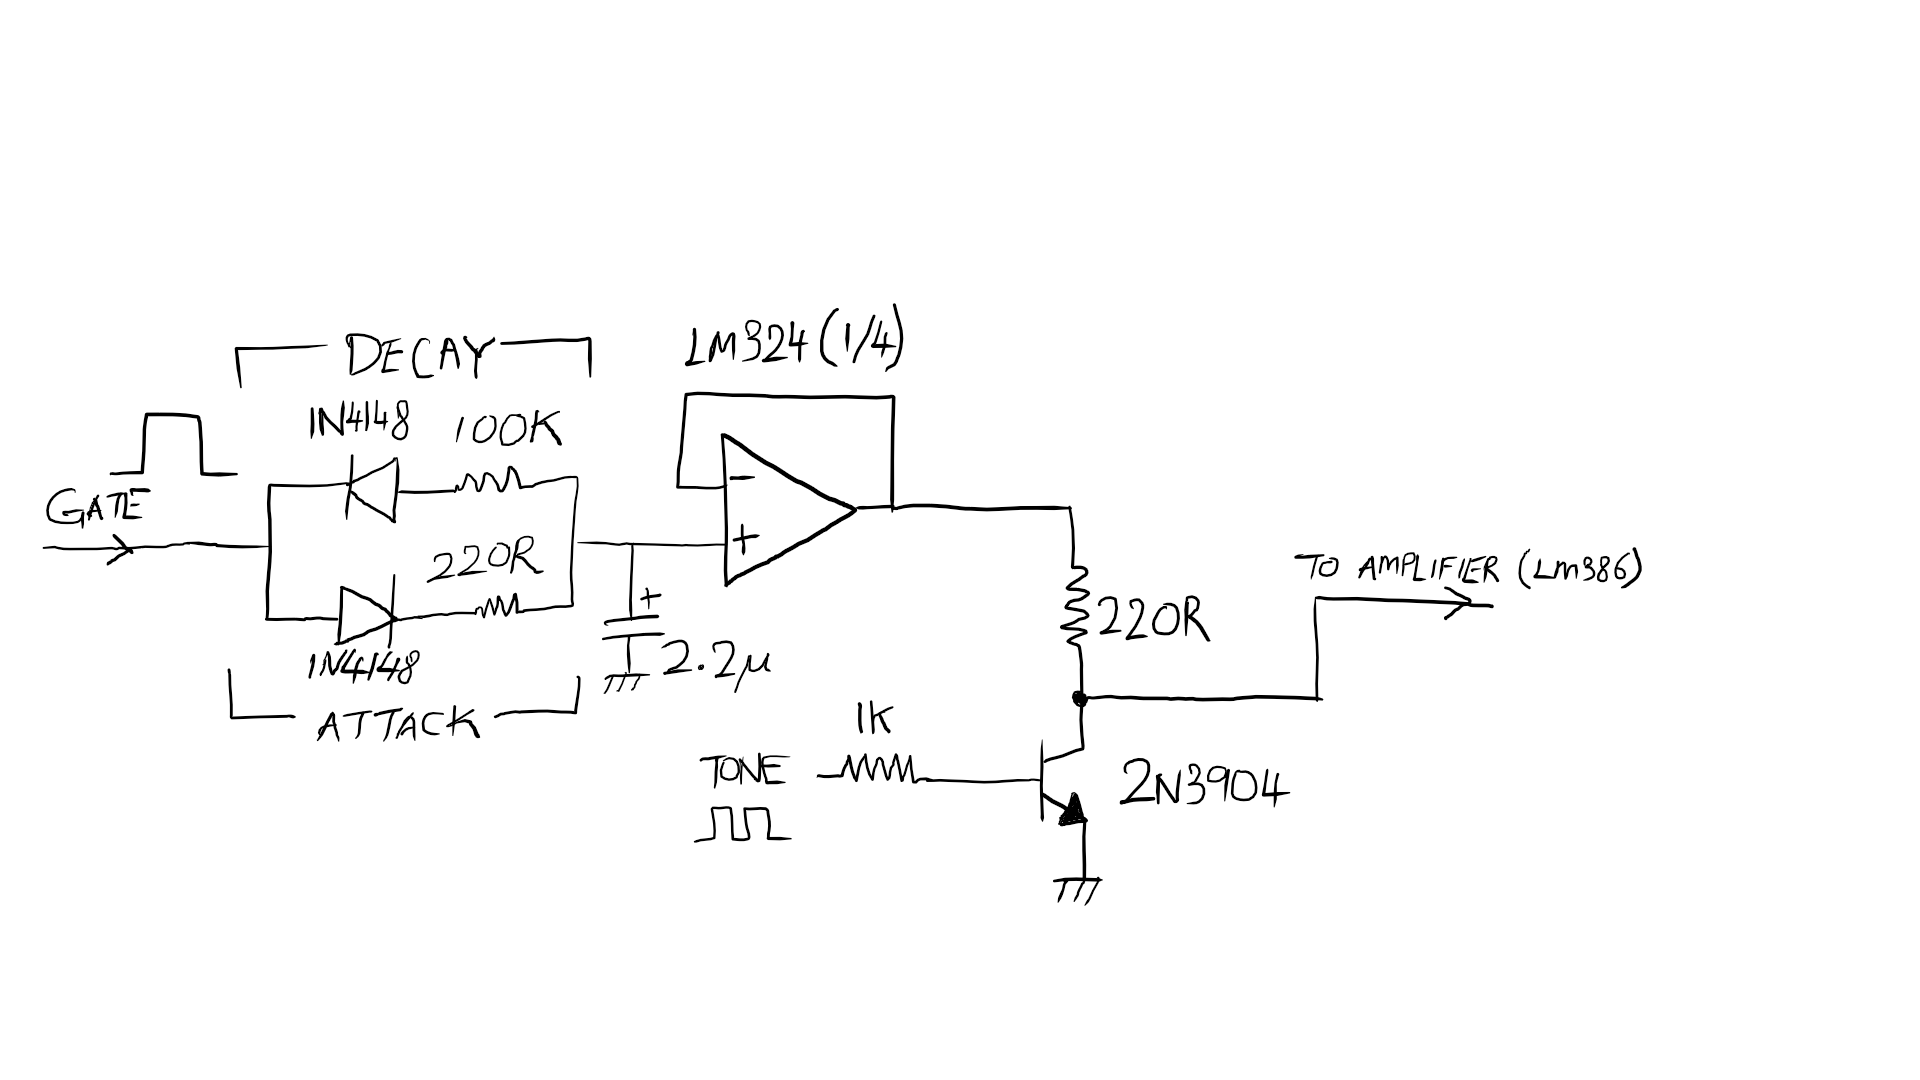 to reduce the extra components used and as a prototype, i modified this to  the following schematic: (apologies for my crappy handwriting, i used a  cheap